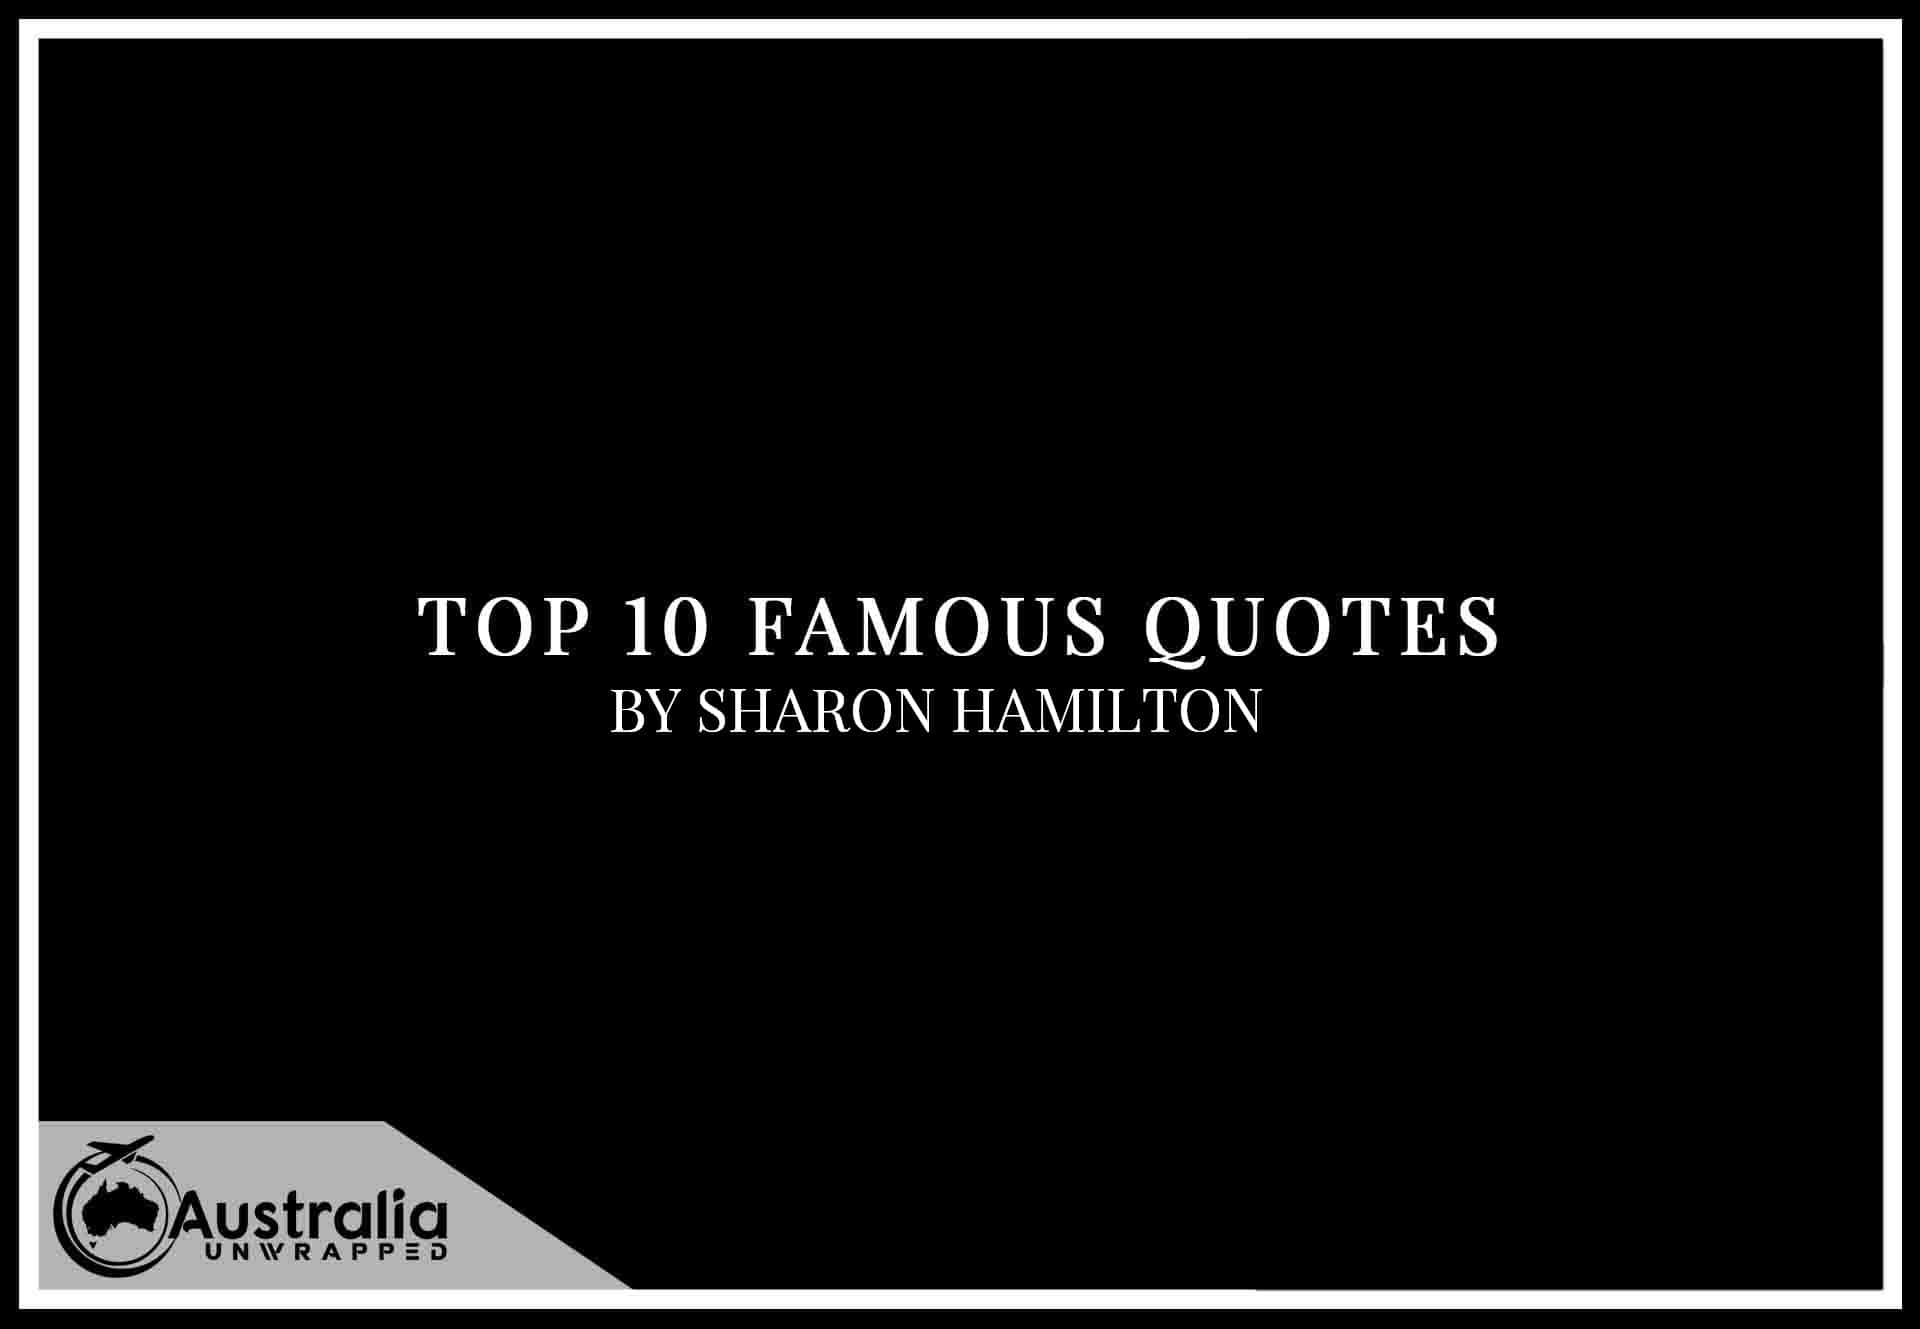 Top 10 Famous Quotes by Author Sharon Hamilton